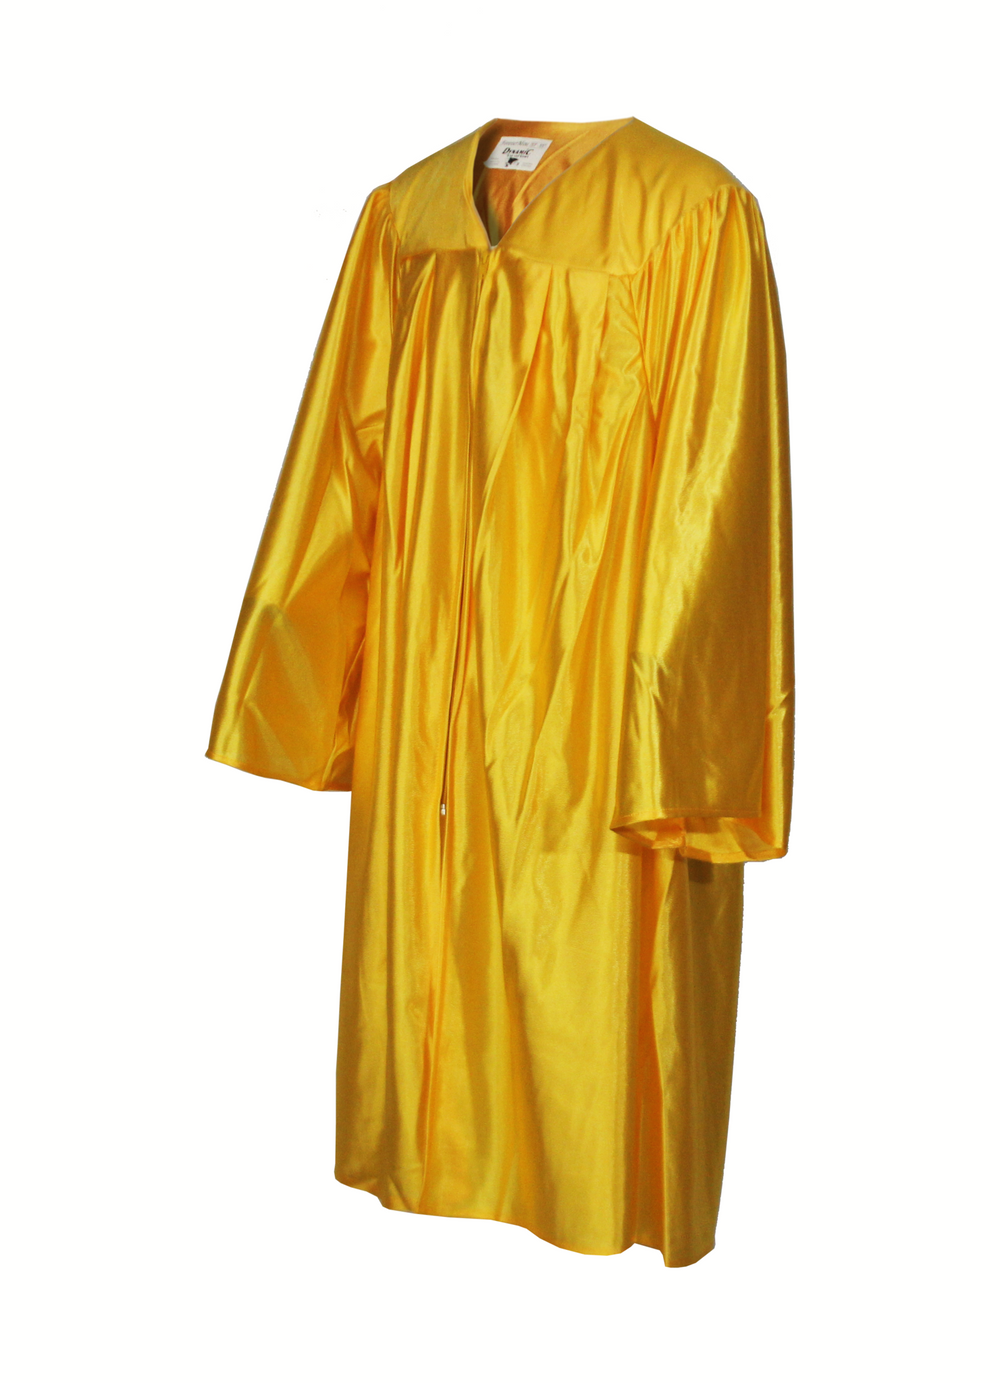 Shiny Gold Choir Gown